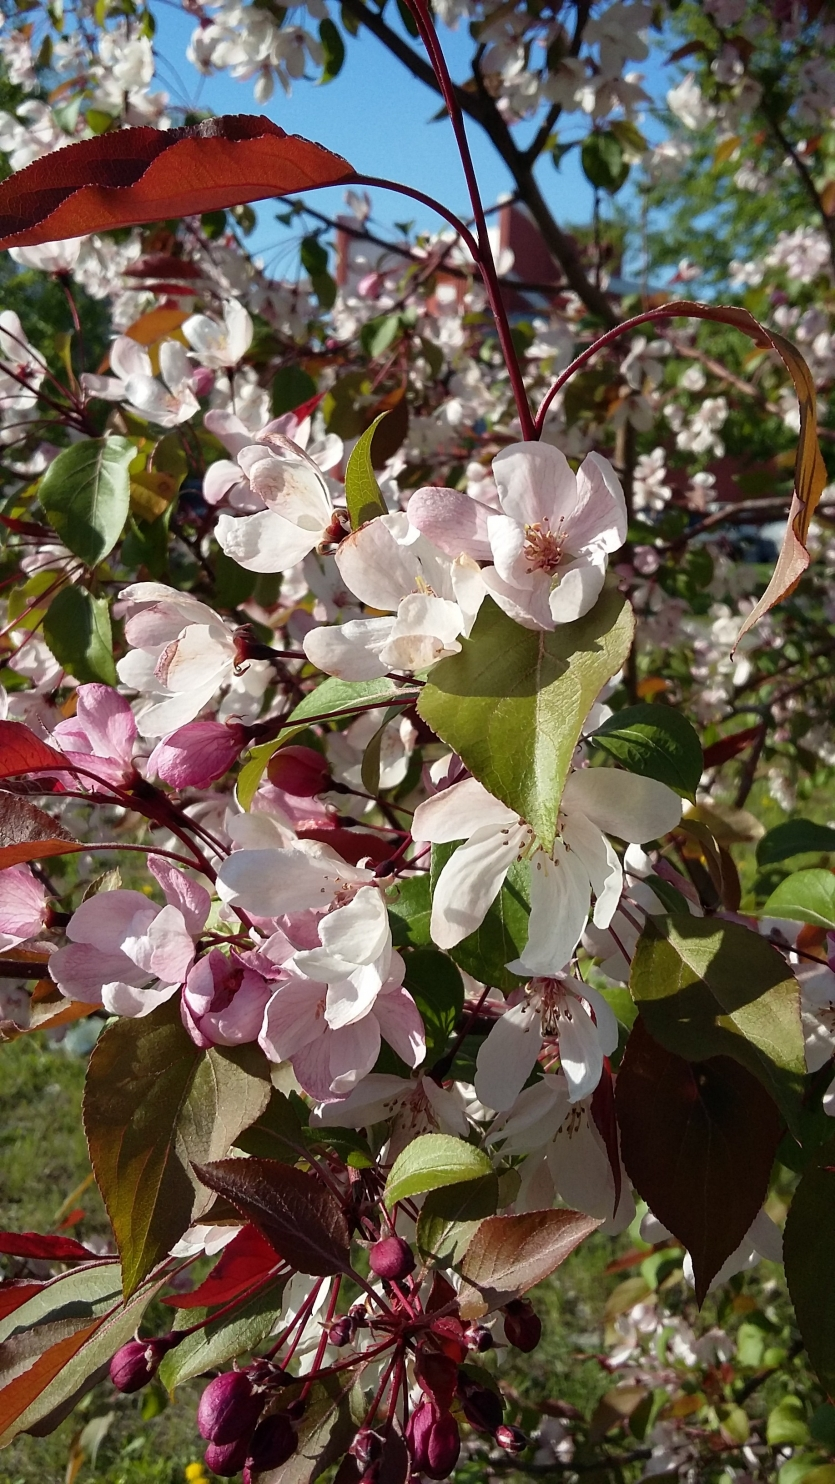 Flowers of wild Apple trees in the rays of the sun